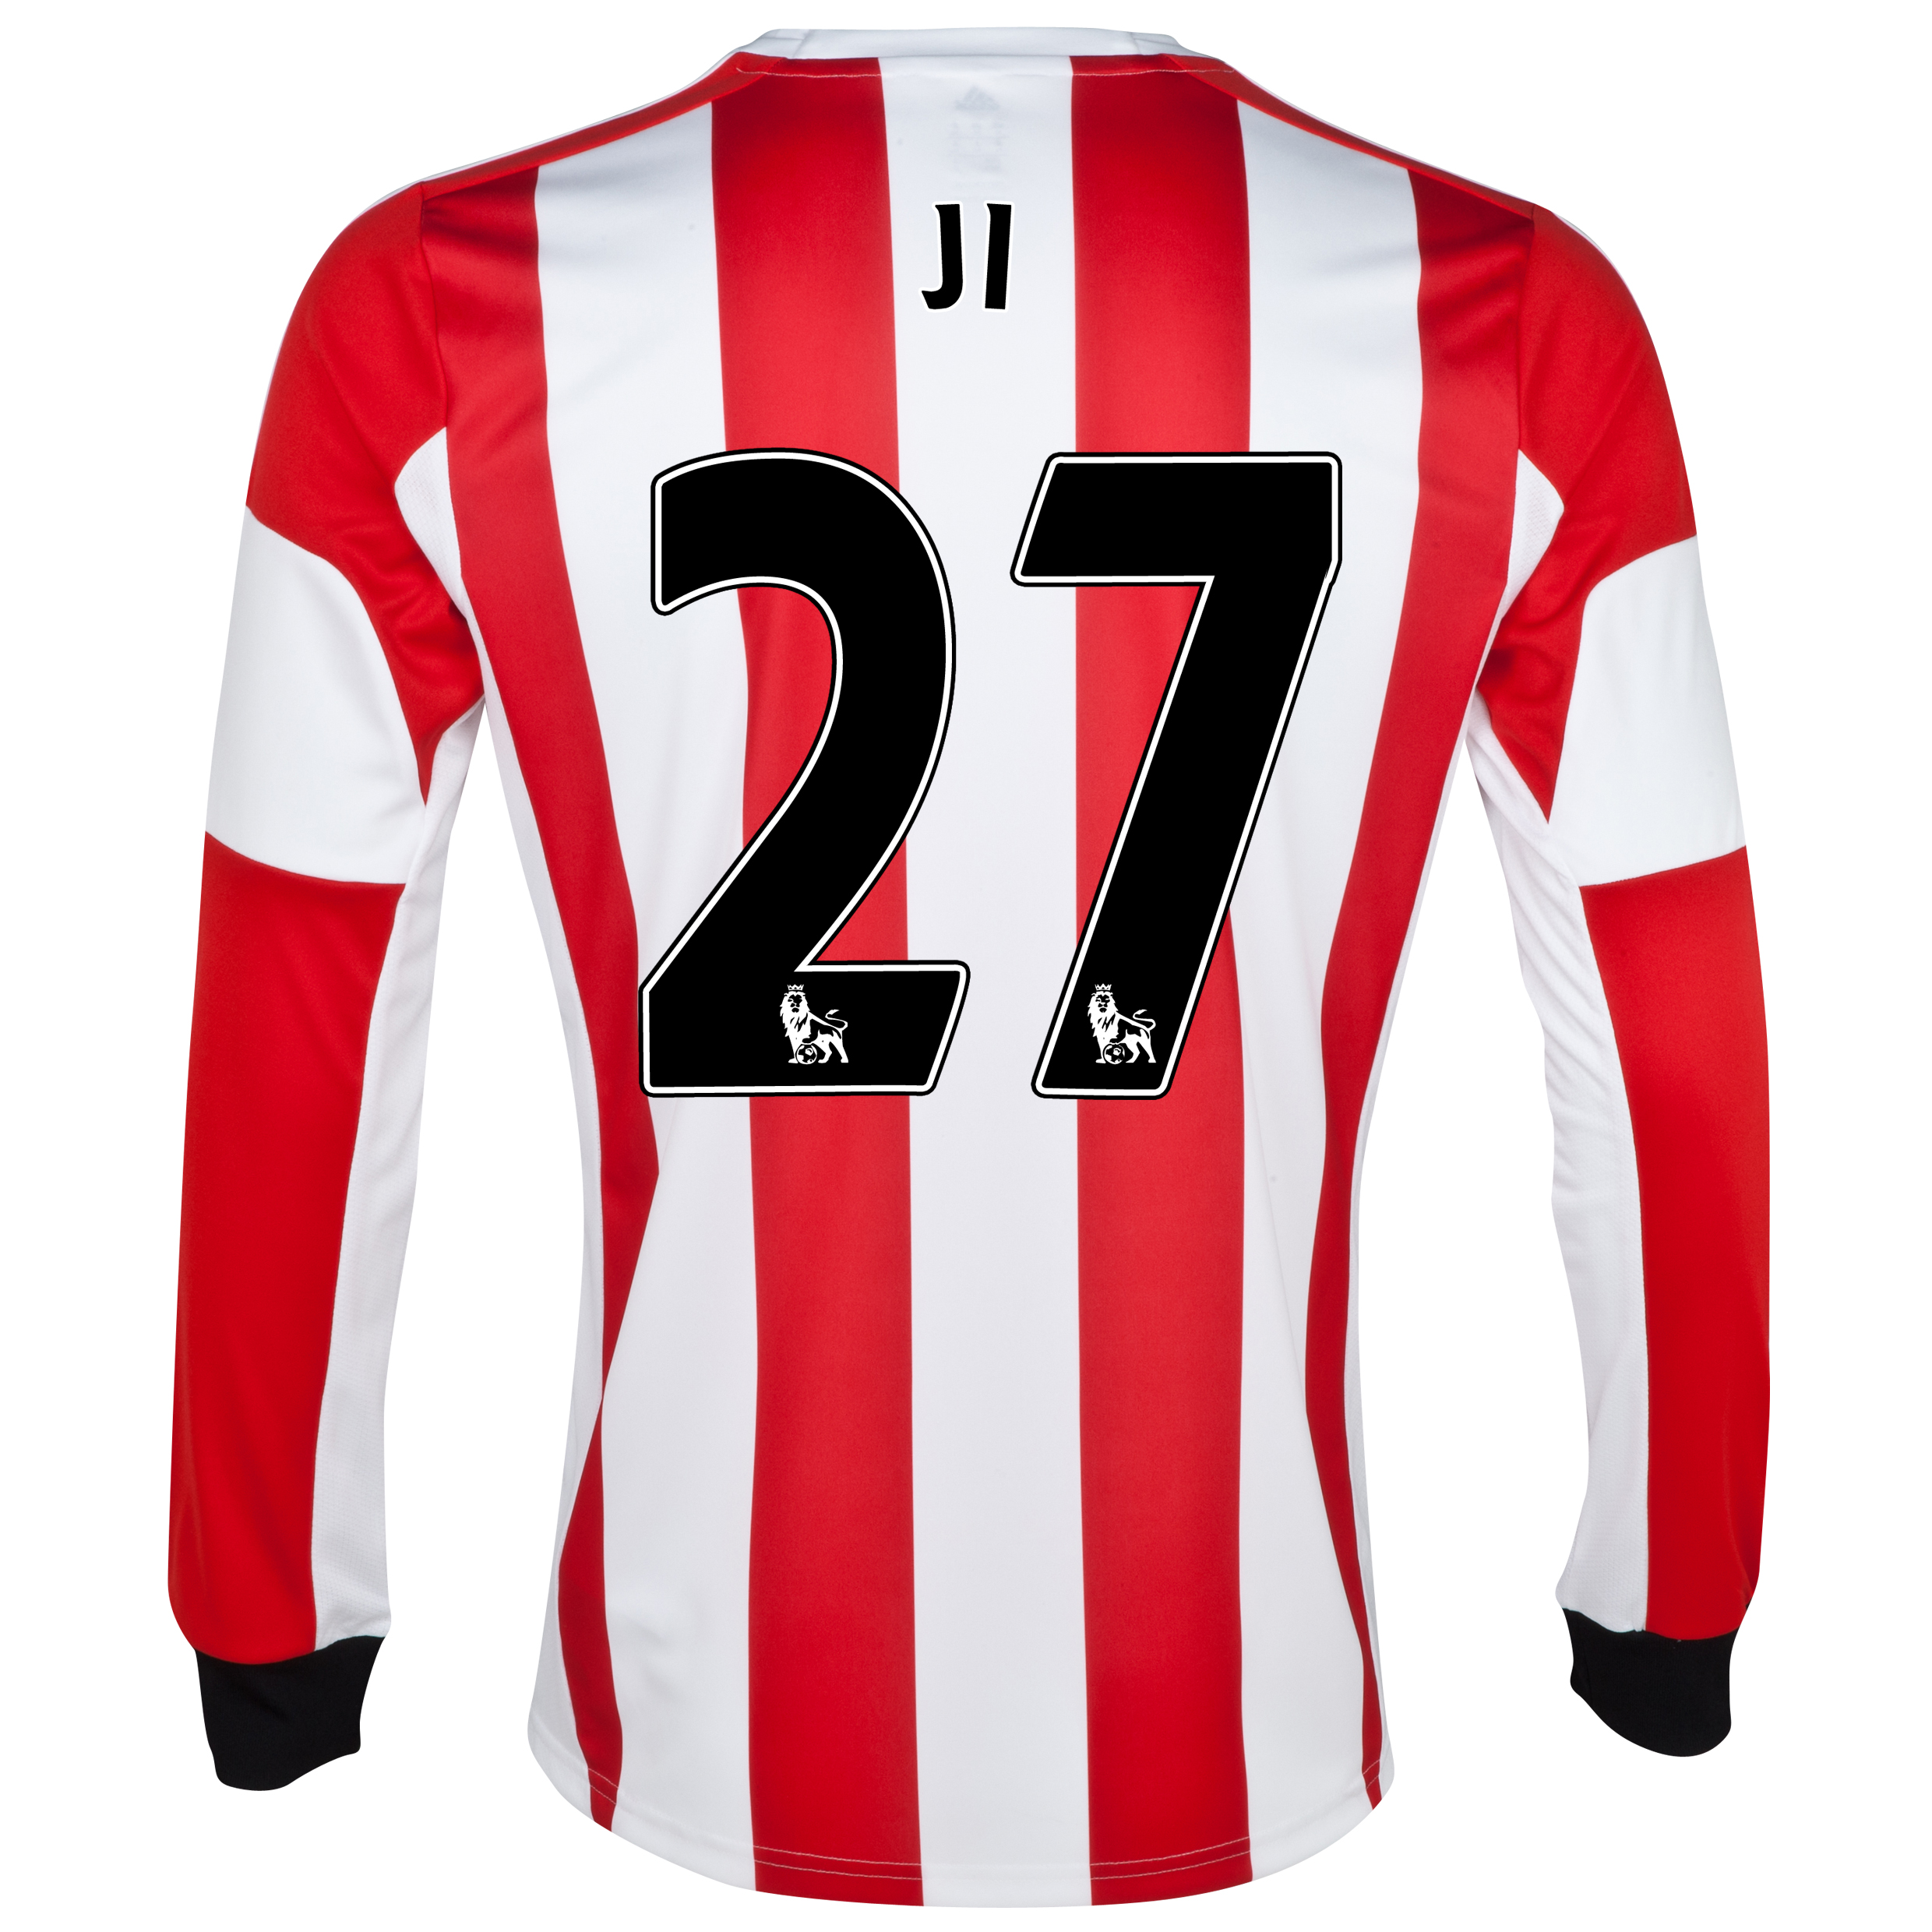 Sunderland Home Shirt 2013/14 - Long Sleeved - Junior with Ji 27 printing